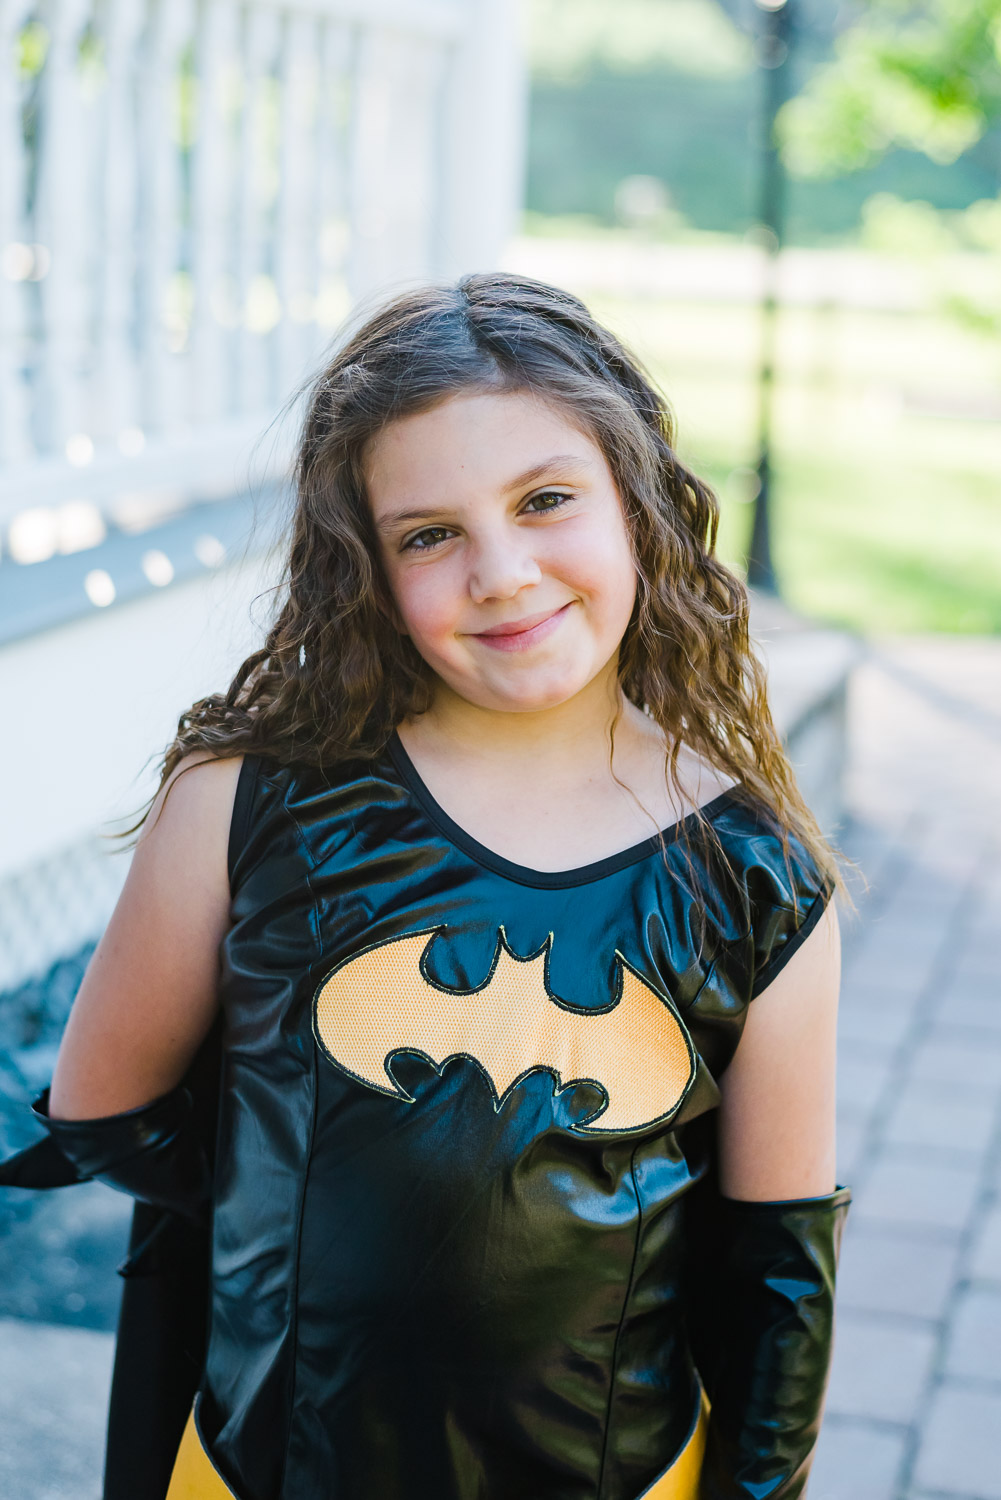 girl in bat girl costume smiling at the camera